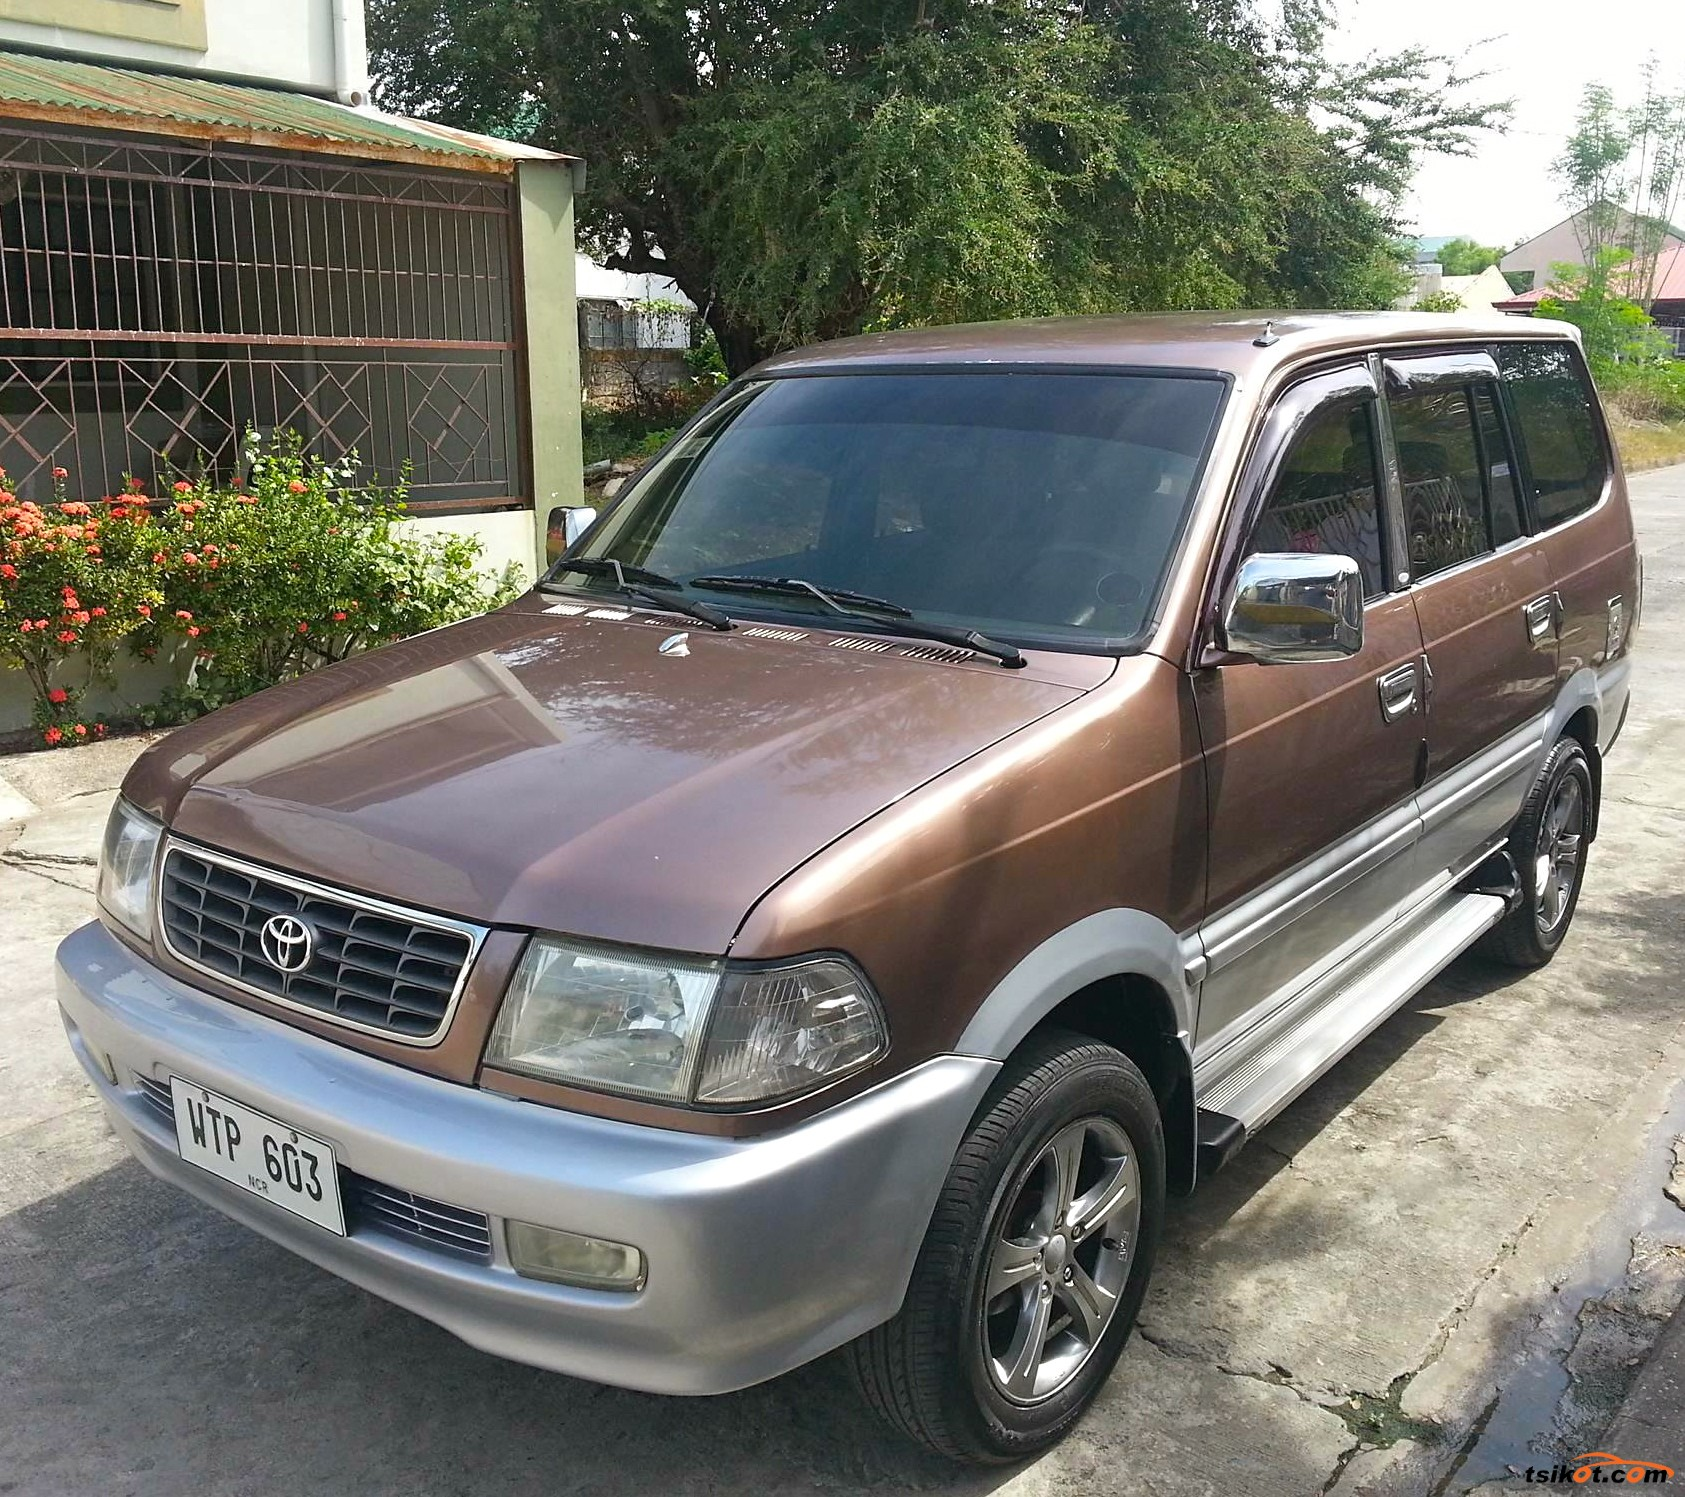 TOYOTA REVO FOR SALE! -Toyota Revo GLX -Year Model: 2001 -Diesel -Color: Mojave Brown/Brownish Gray Metallic -All Power -Cool A/C -2L Engine -Clean & Intact Interior -Fresh In and Out -Almost New Tires -16